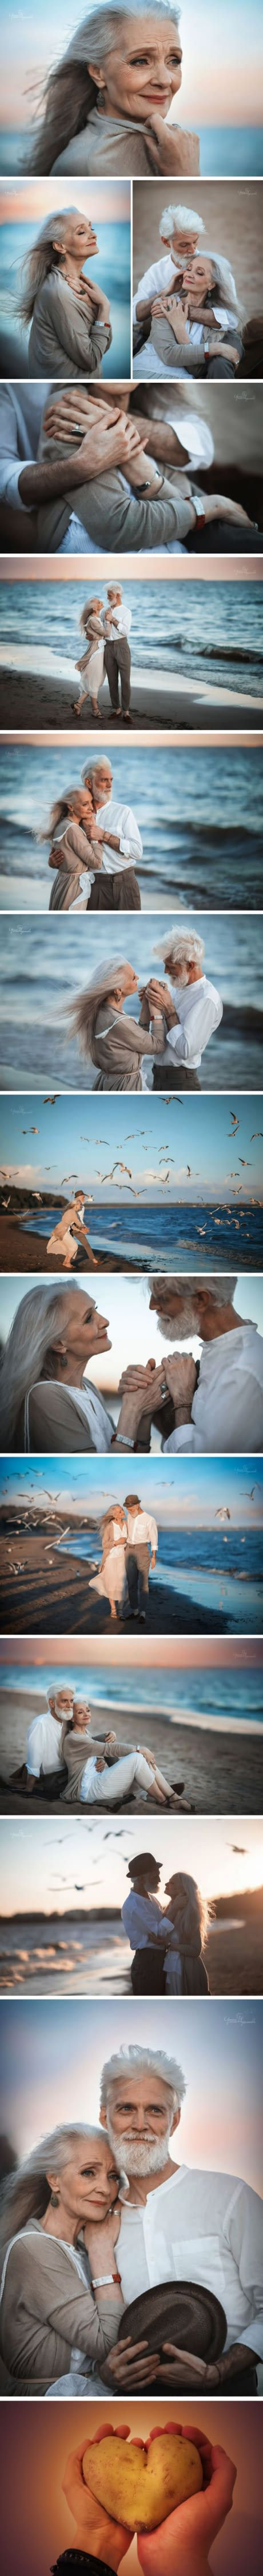 Photographer Captures Elderly Couple's Precious Moment To Show Eternal Love